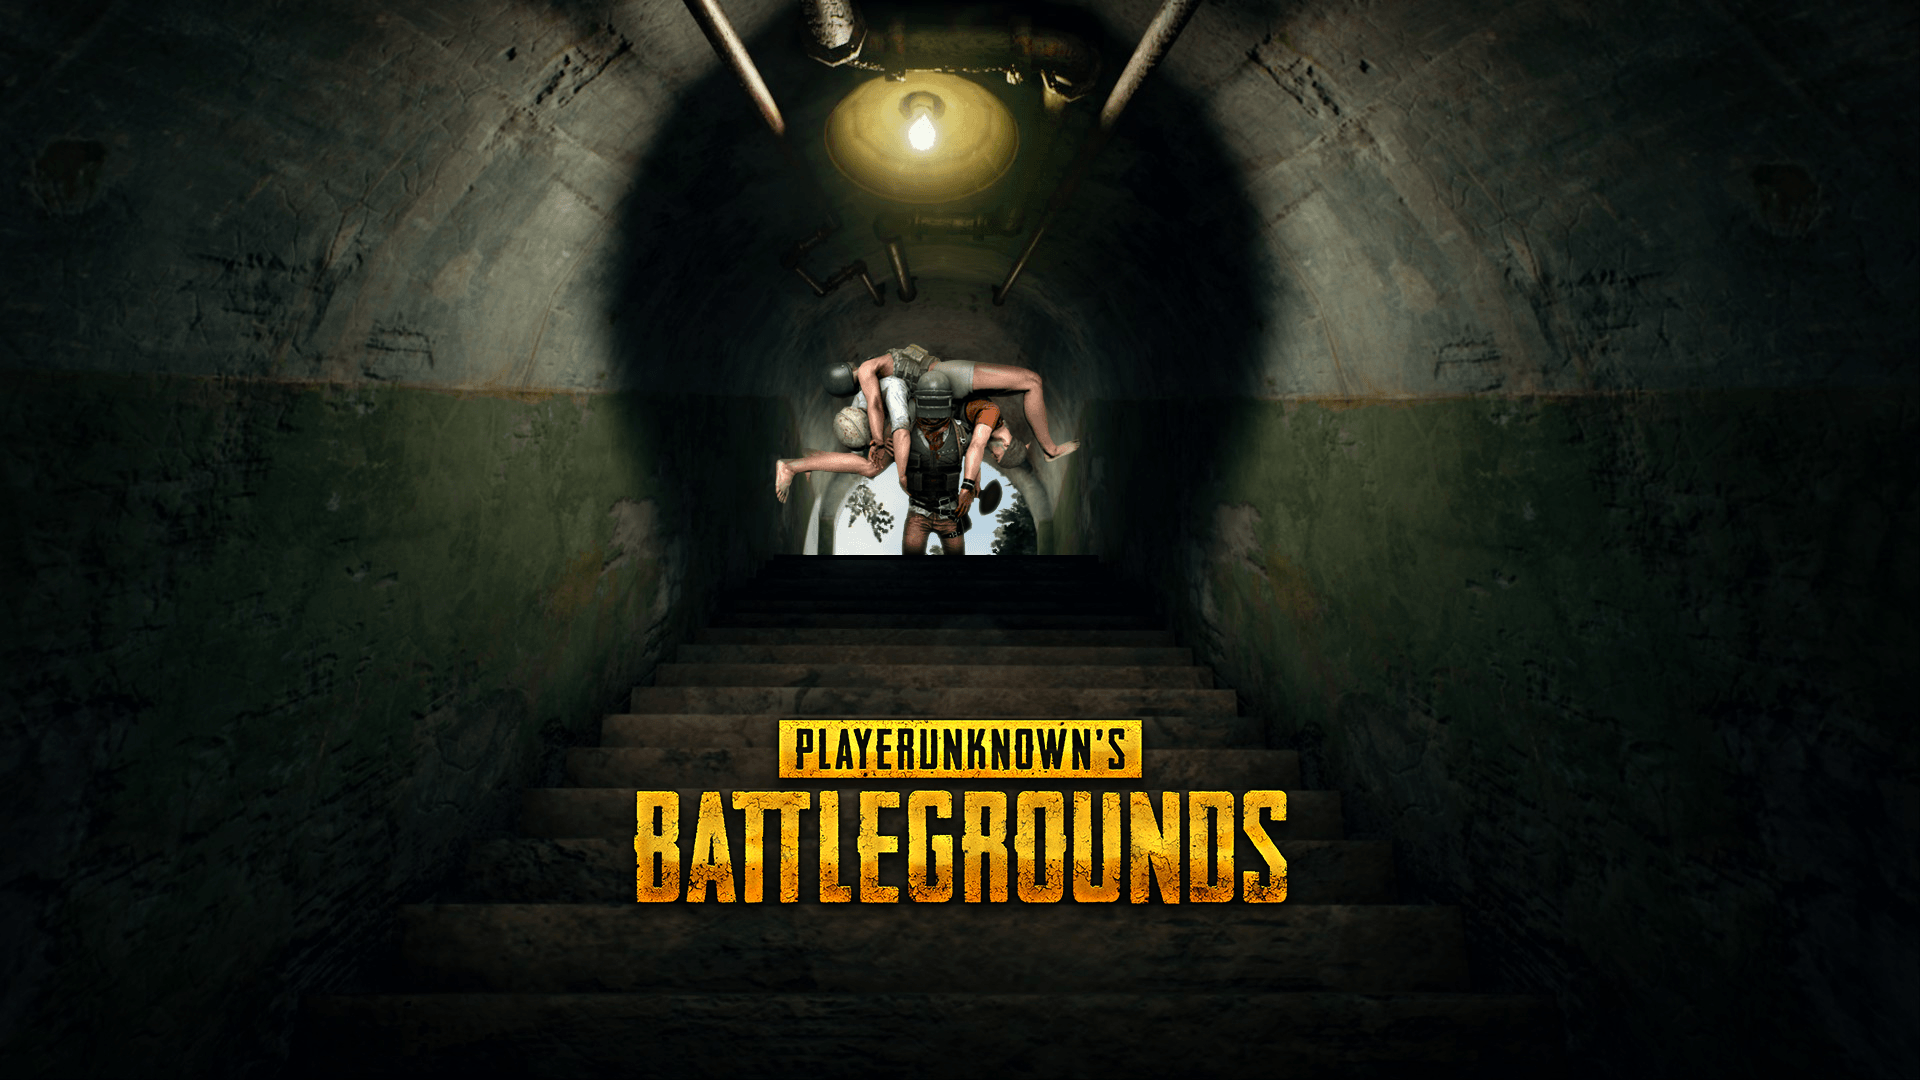 Pubg Artwork Wallpapers: PUBG Wallpapers